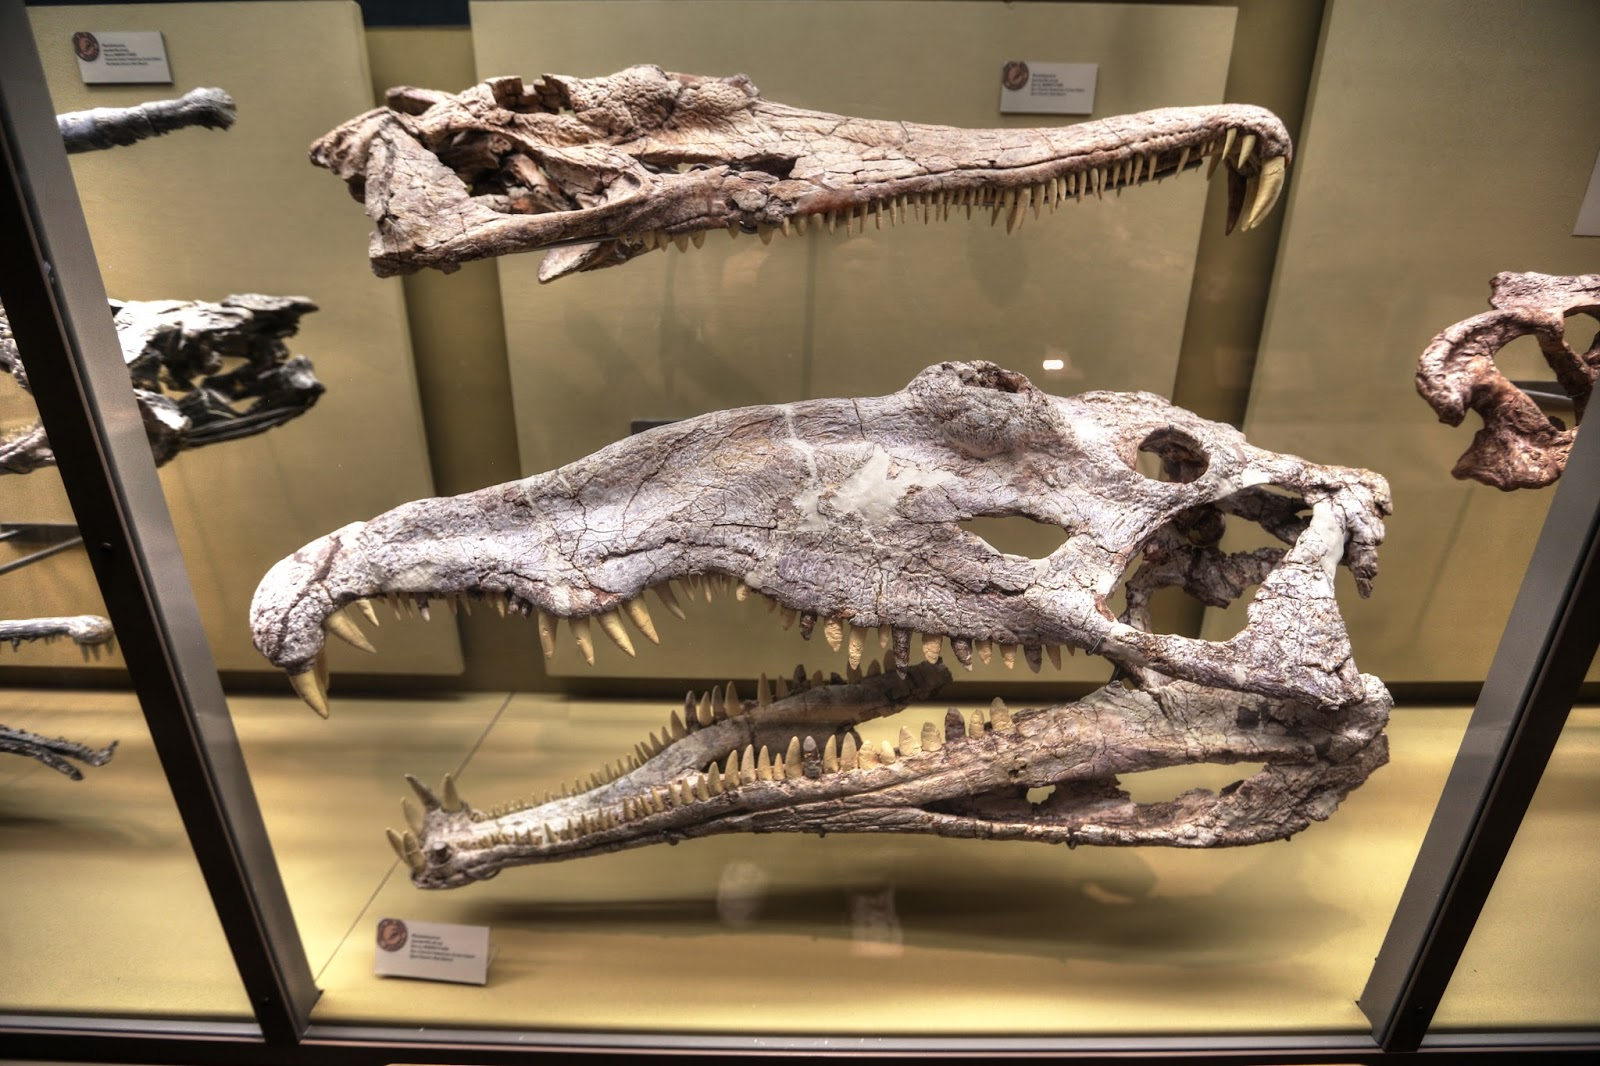 Green tea and velociraptors it s just a flesh wound - Machaeroprosopus Skulls At The New Mexico Museum Of Natural History Cc By 2 0 Created By Lee Ruk No Scale Is Provided But The Skull Is Certainly Longer